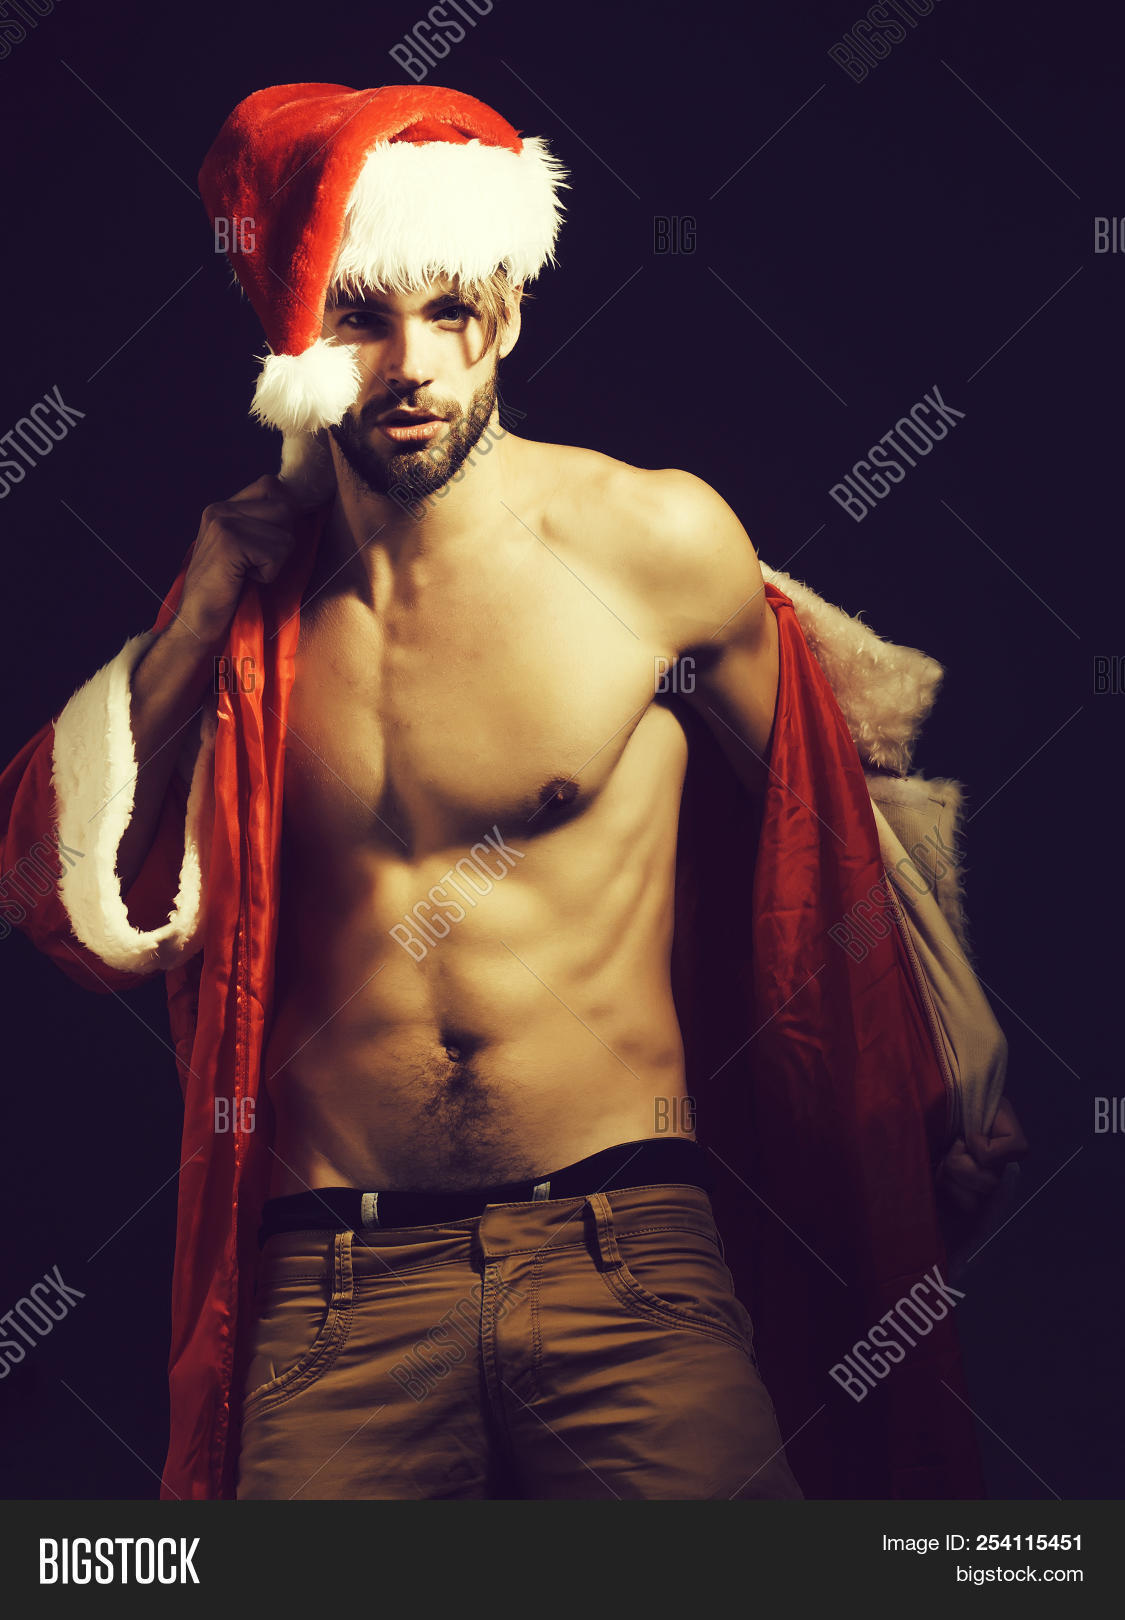 a4ce79cd984a1 Handsome santa claus guy sexy young bearded macho christmas man model in  red xmas or new year coat and hat has bare muscular torso and chest on  black ...